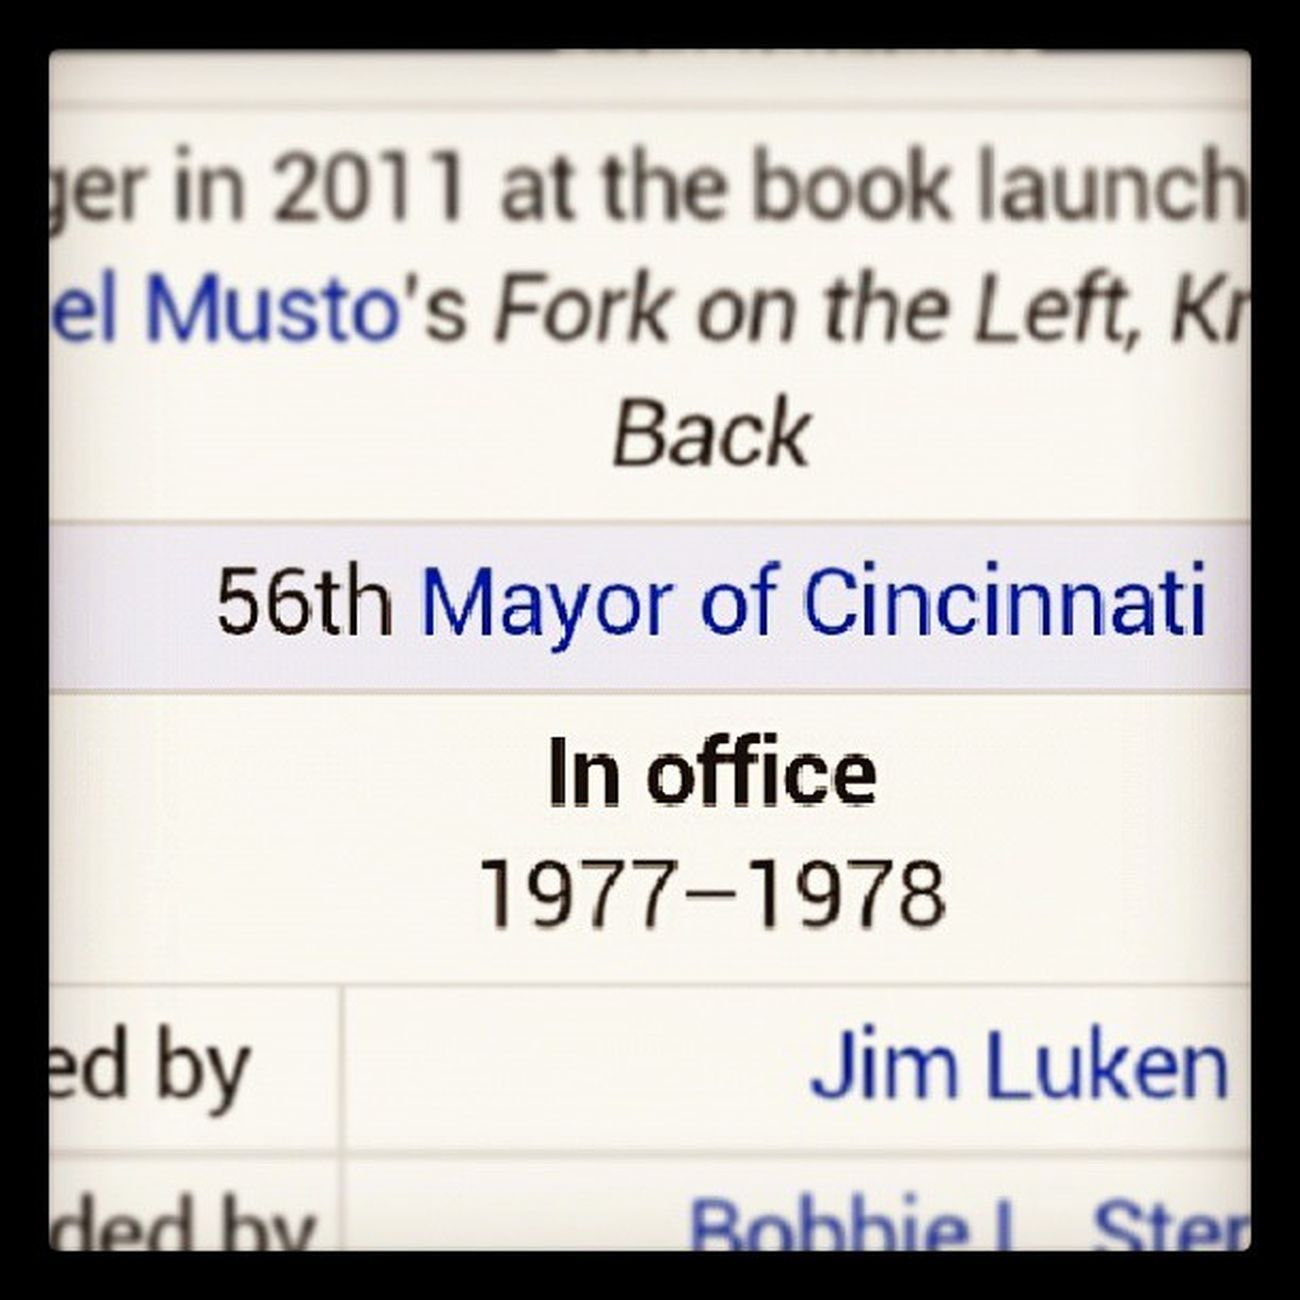 WTF?? JerrySpringer IS THE MAYOR OF CINCIJATTI LIKE WHAT Pardon